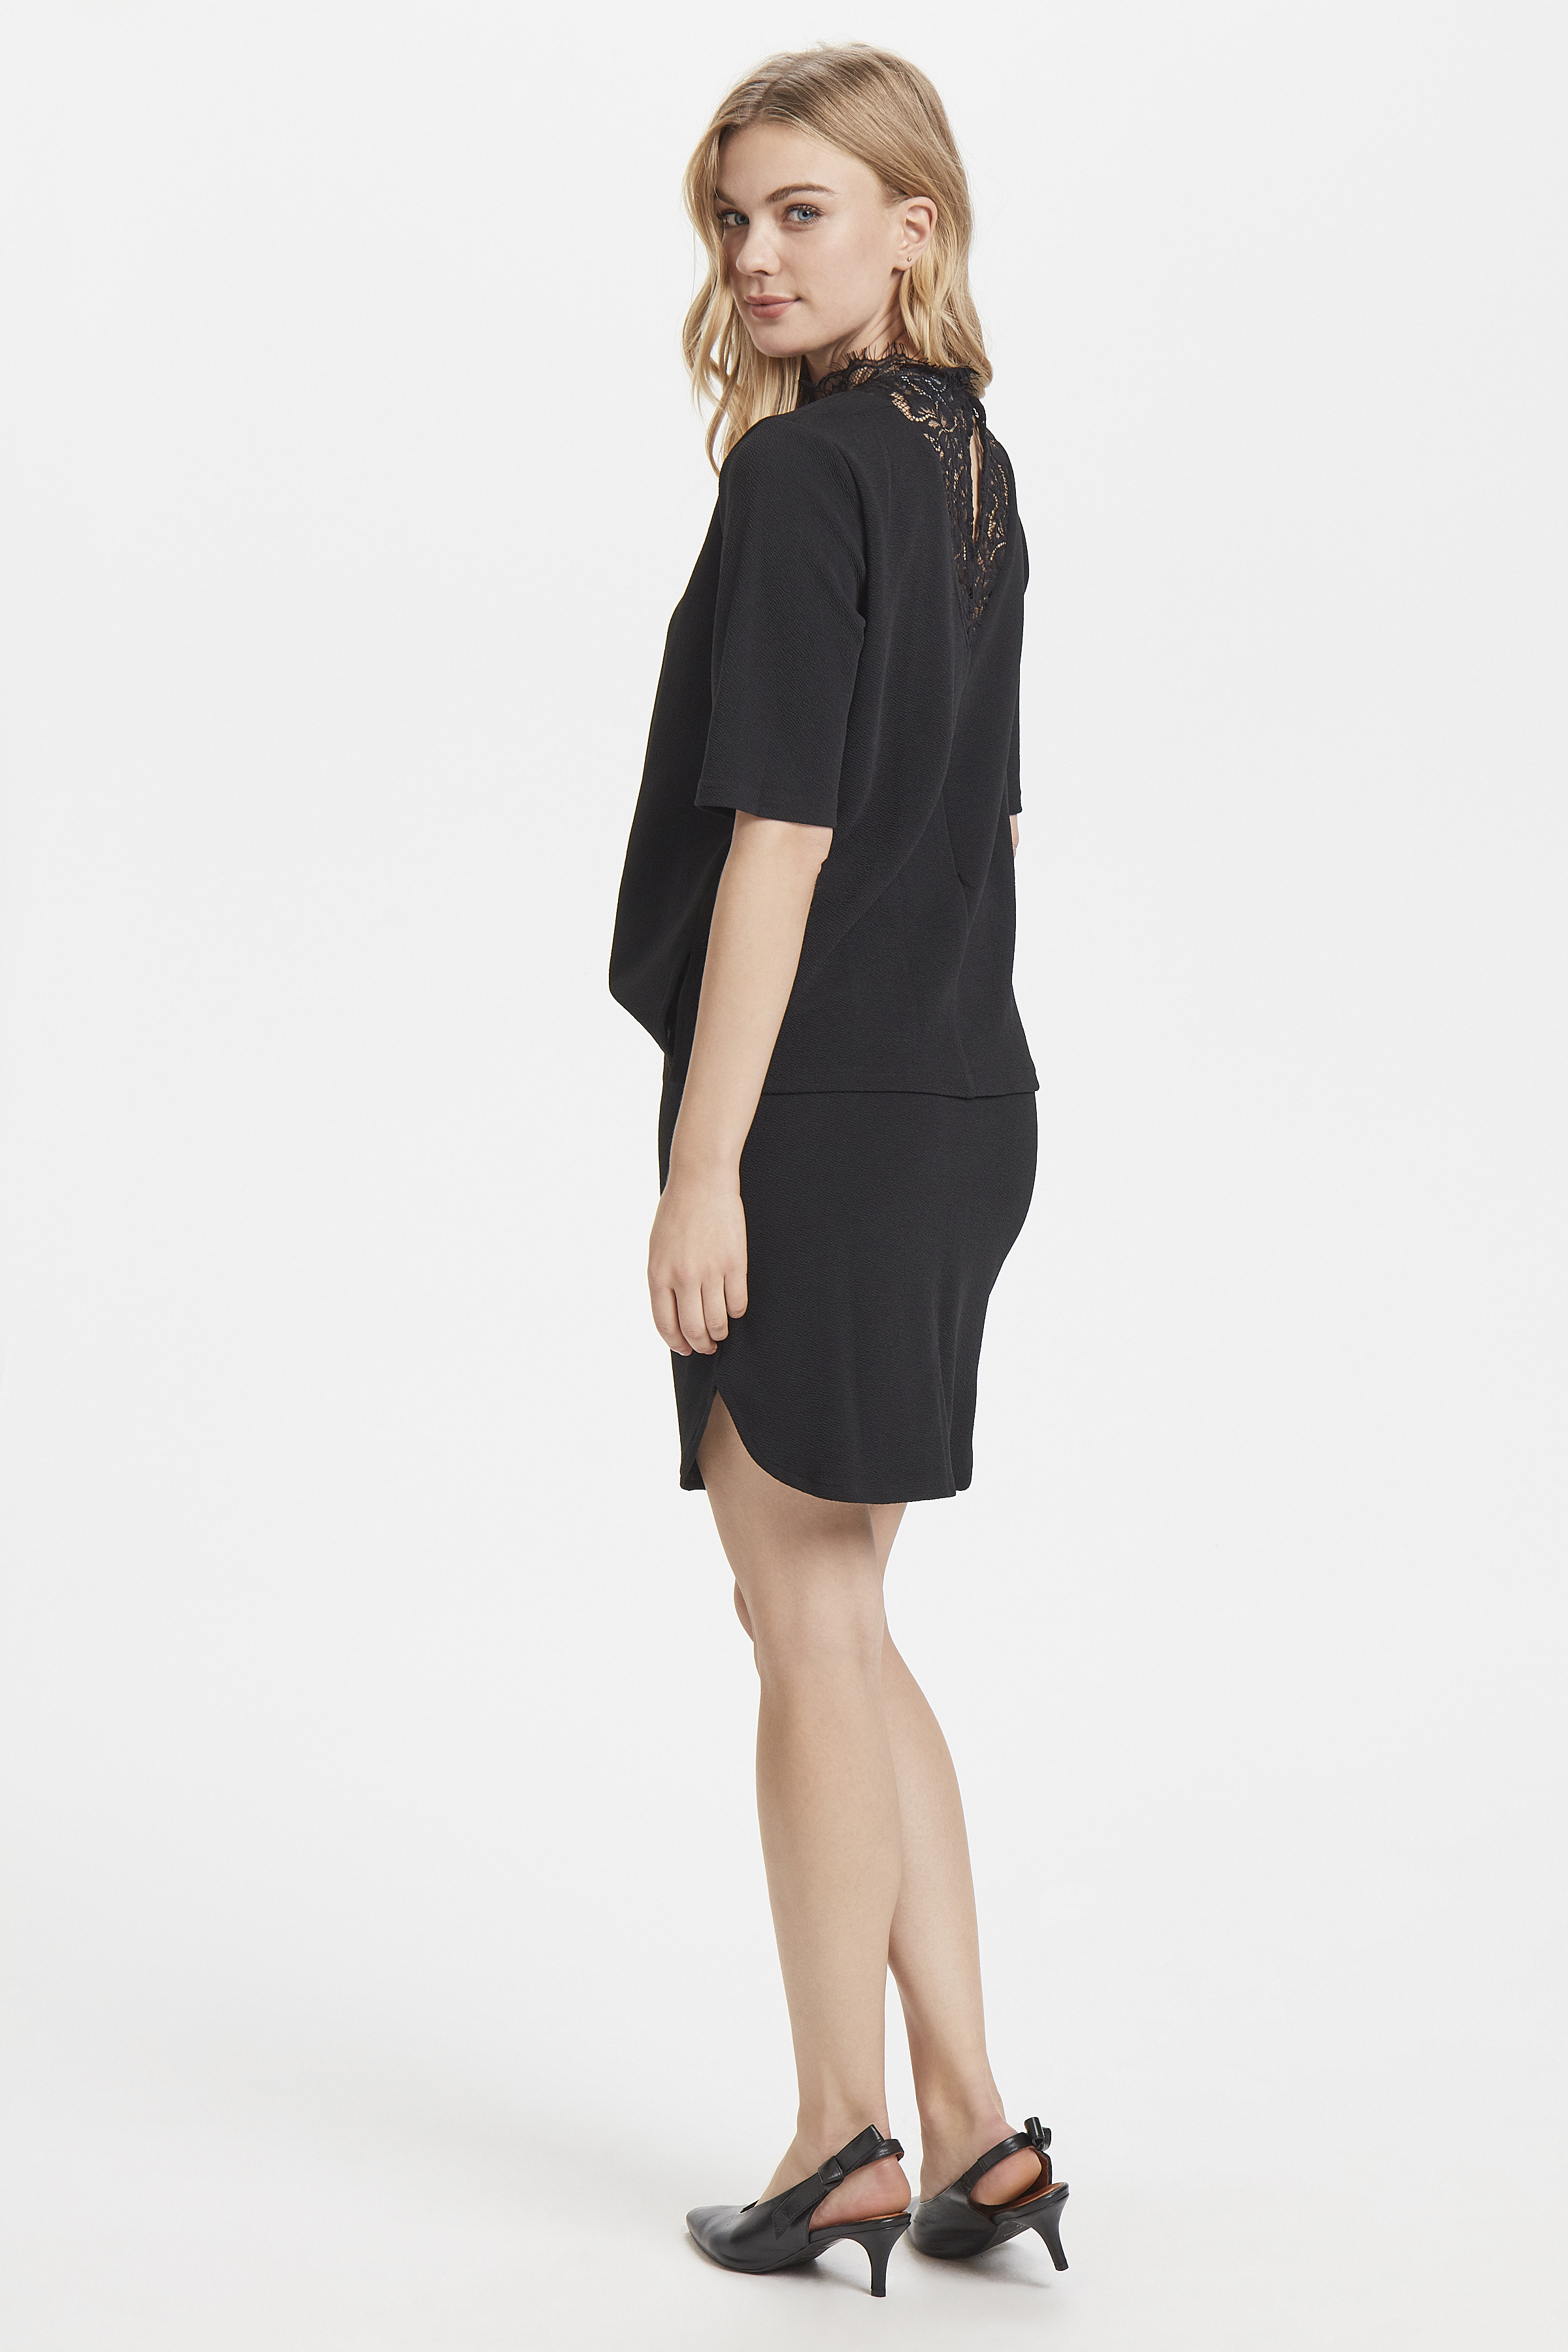 Black Jersey dress from b.young – Buy Black Jersey dress from size XS-XL here